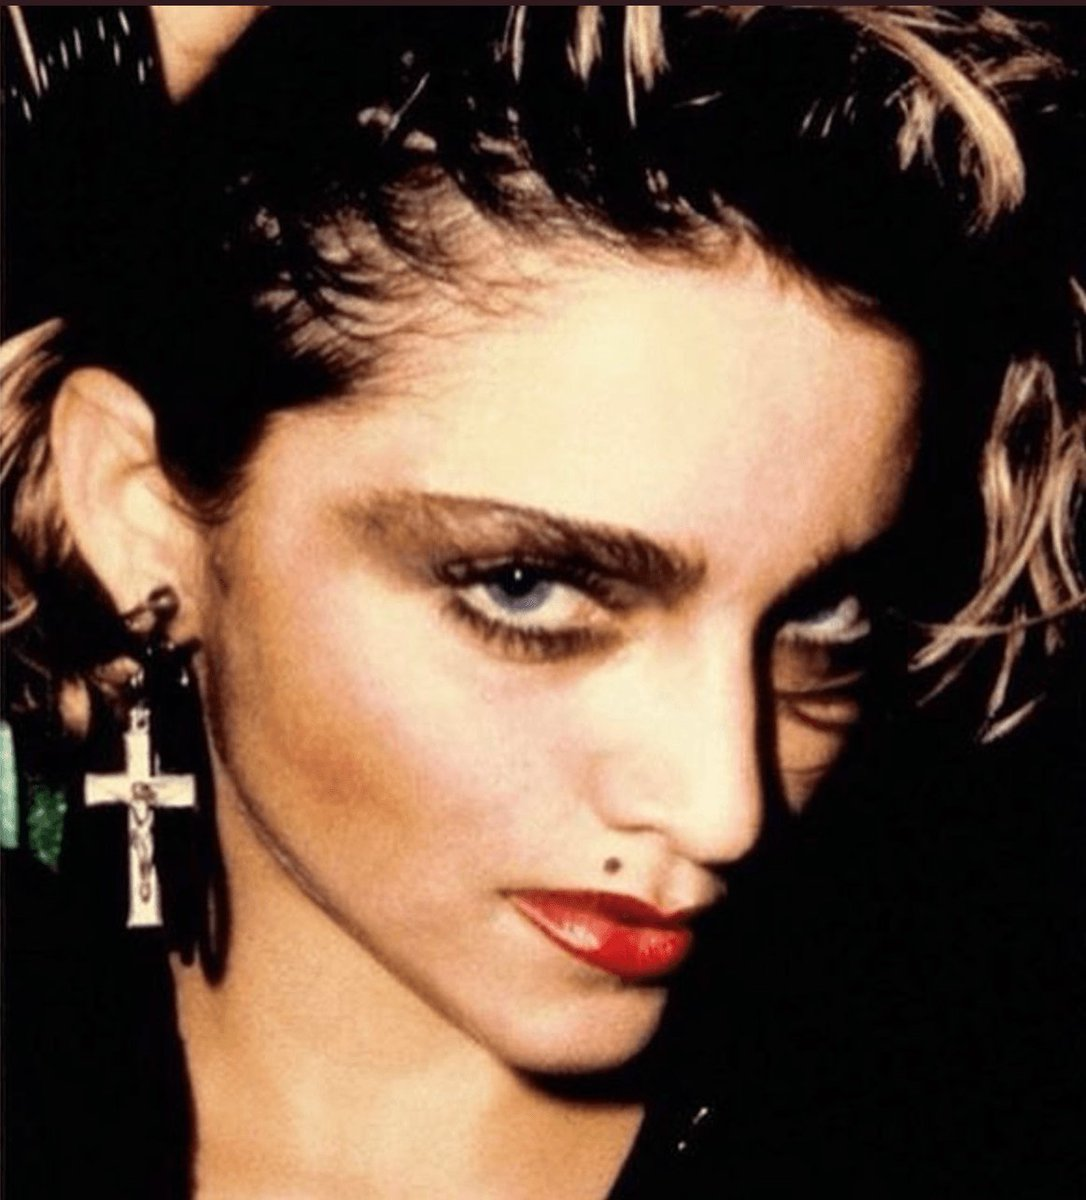 #Madonna responds to biopic Blond Ambition -  http:// bit.ly/2q5LnAs  &nbsp;   #madonnabiopic #blondambition <br>http://pic.twitter.com/L9xpdl31qo